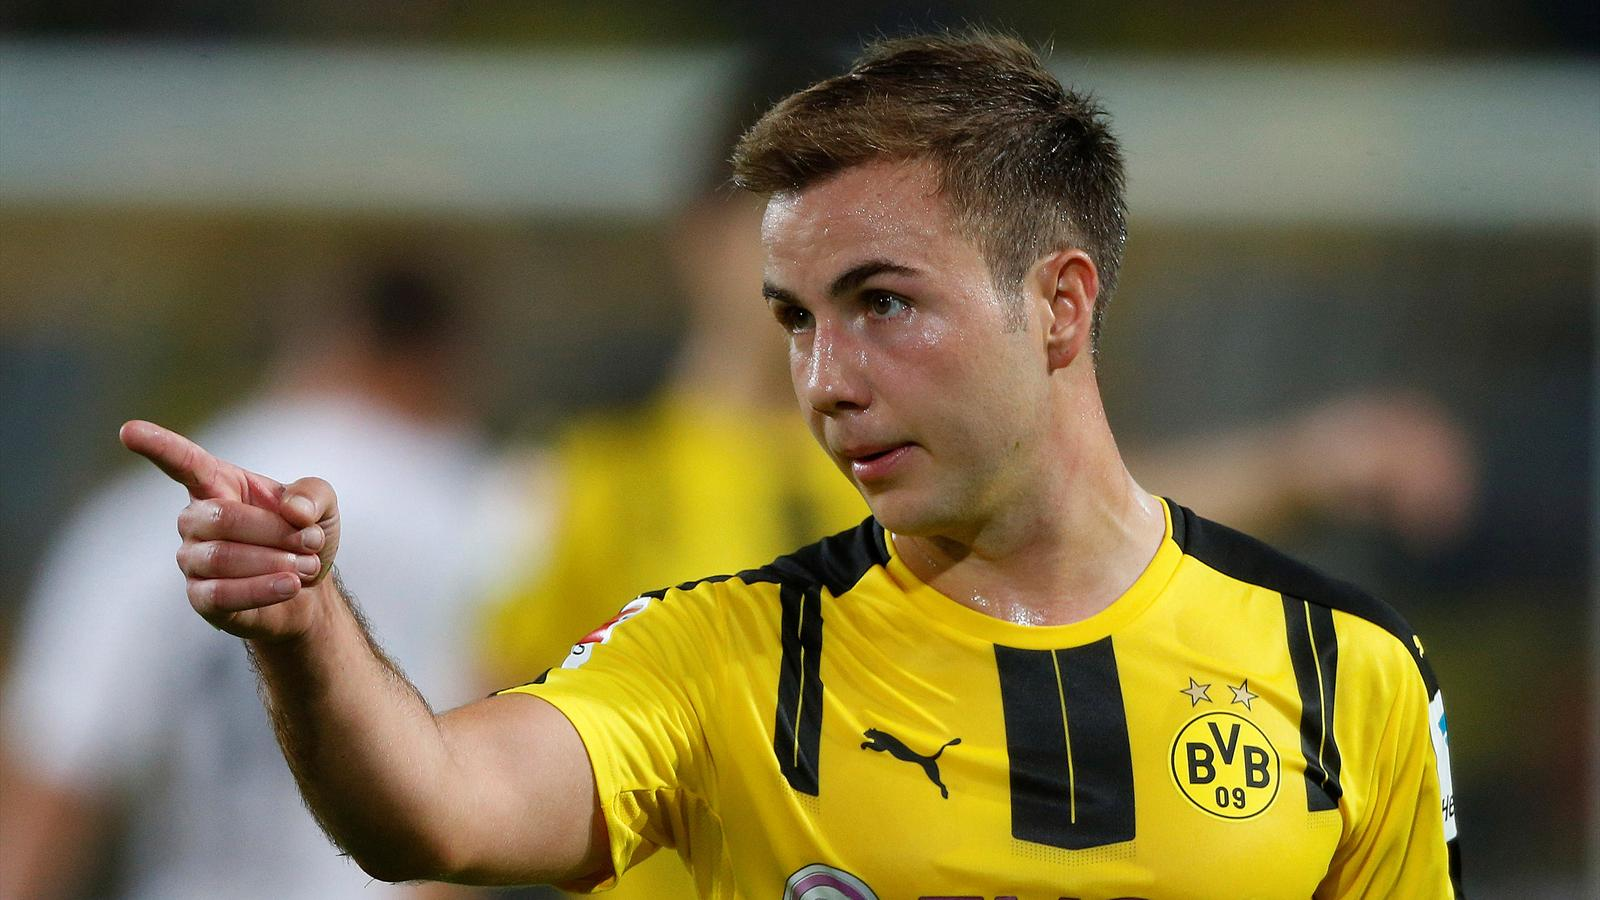 Mario Gotze to miss rest of season, but Borussia Dortmund attacker hopeful of full recovery ...